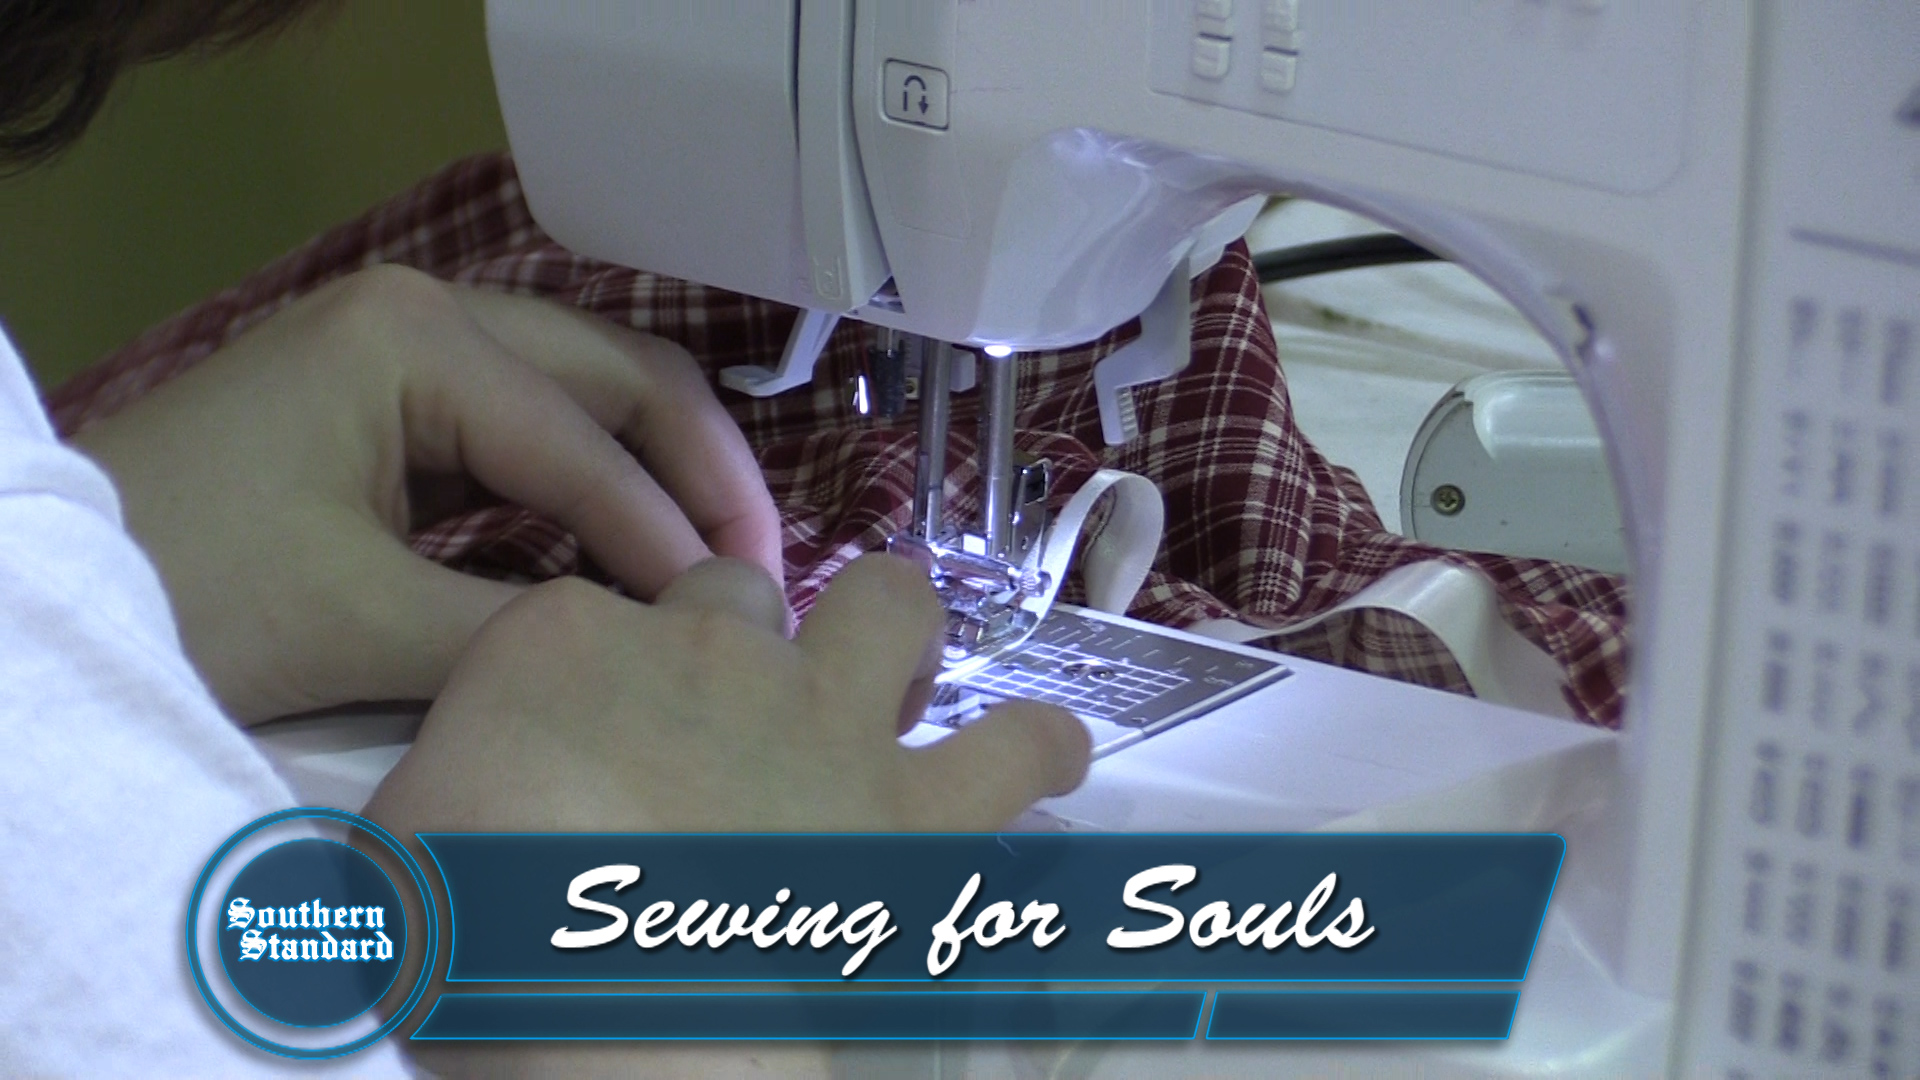 VIDEO - Sewing for Souls